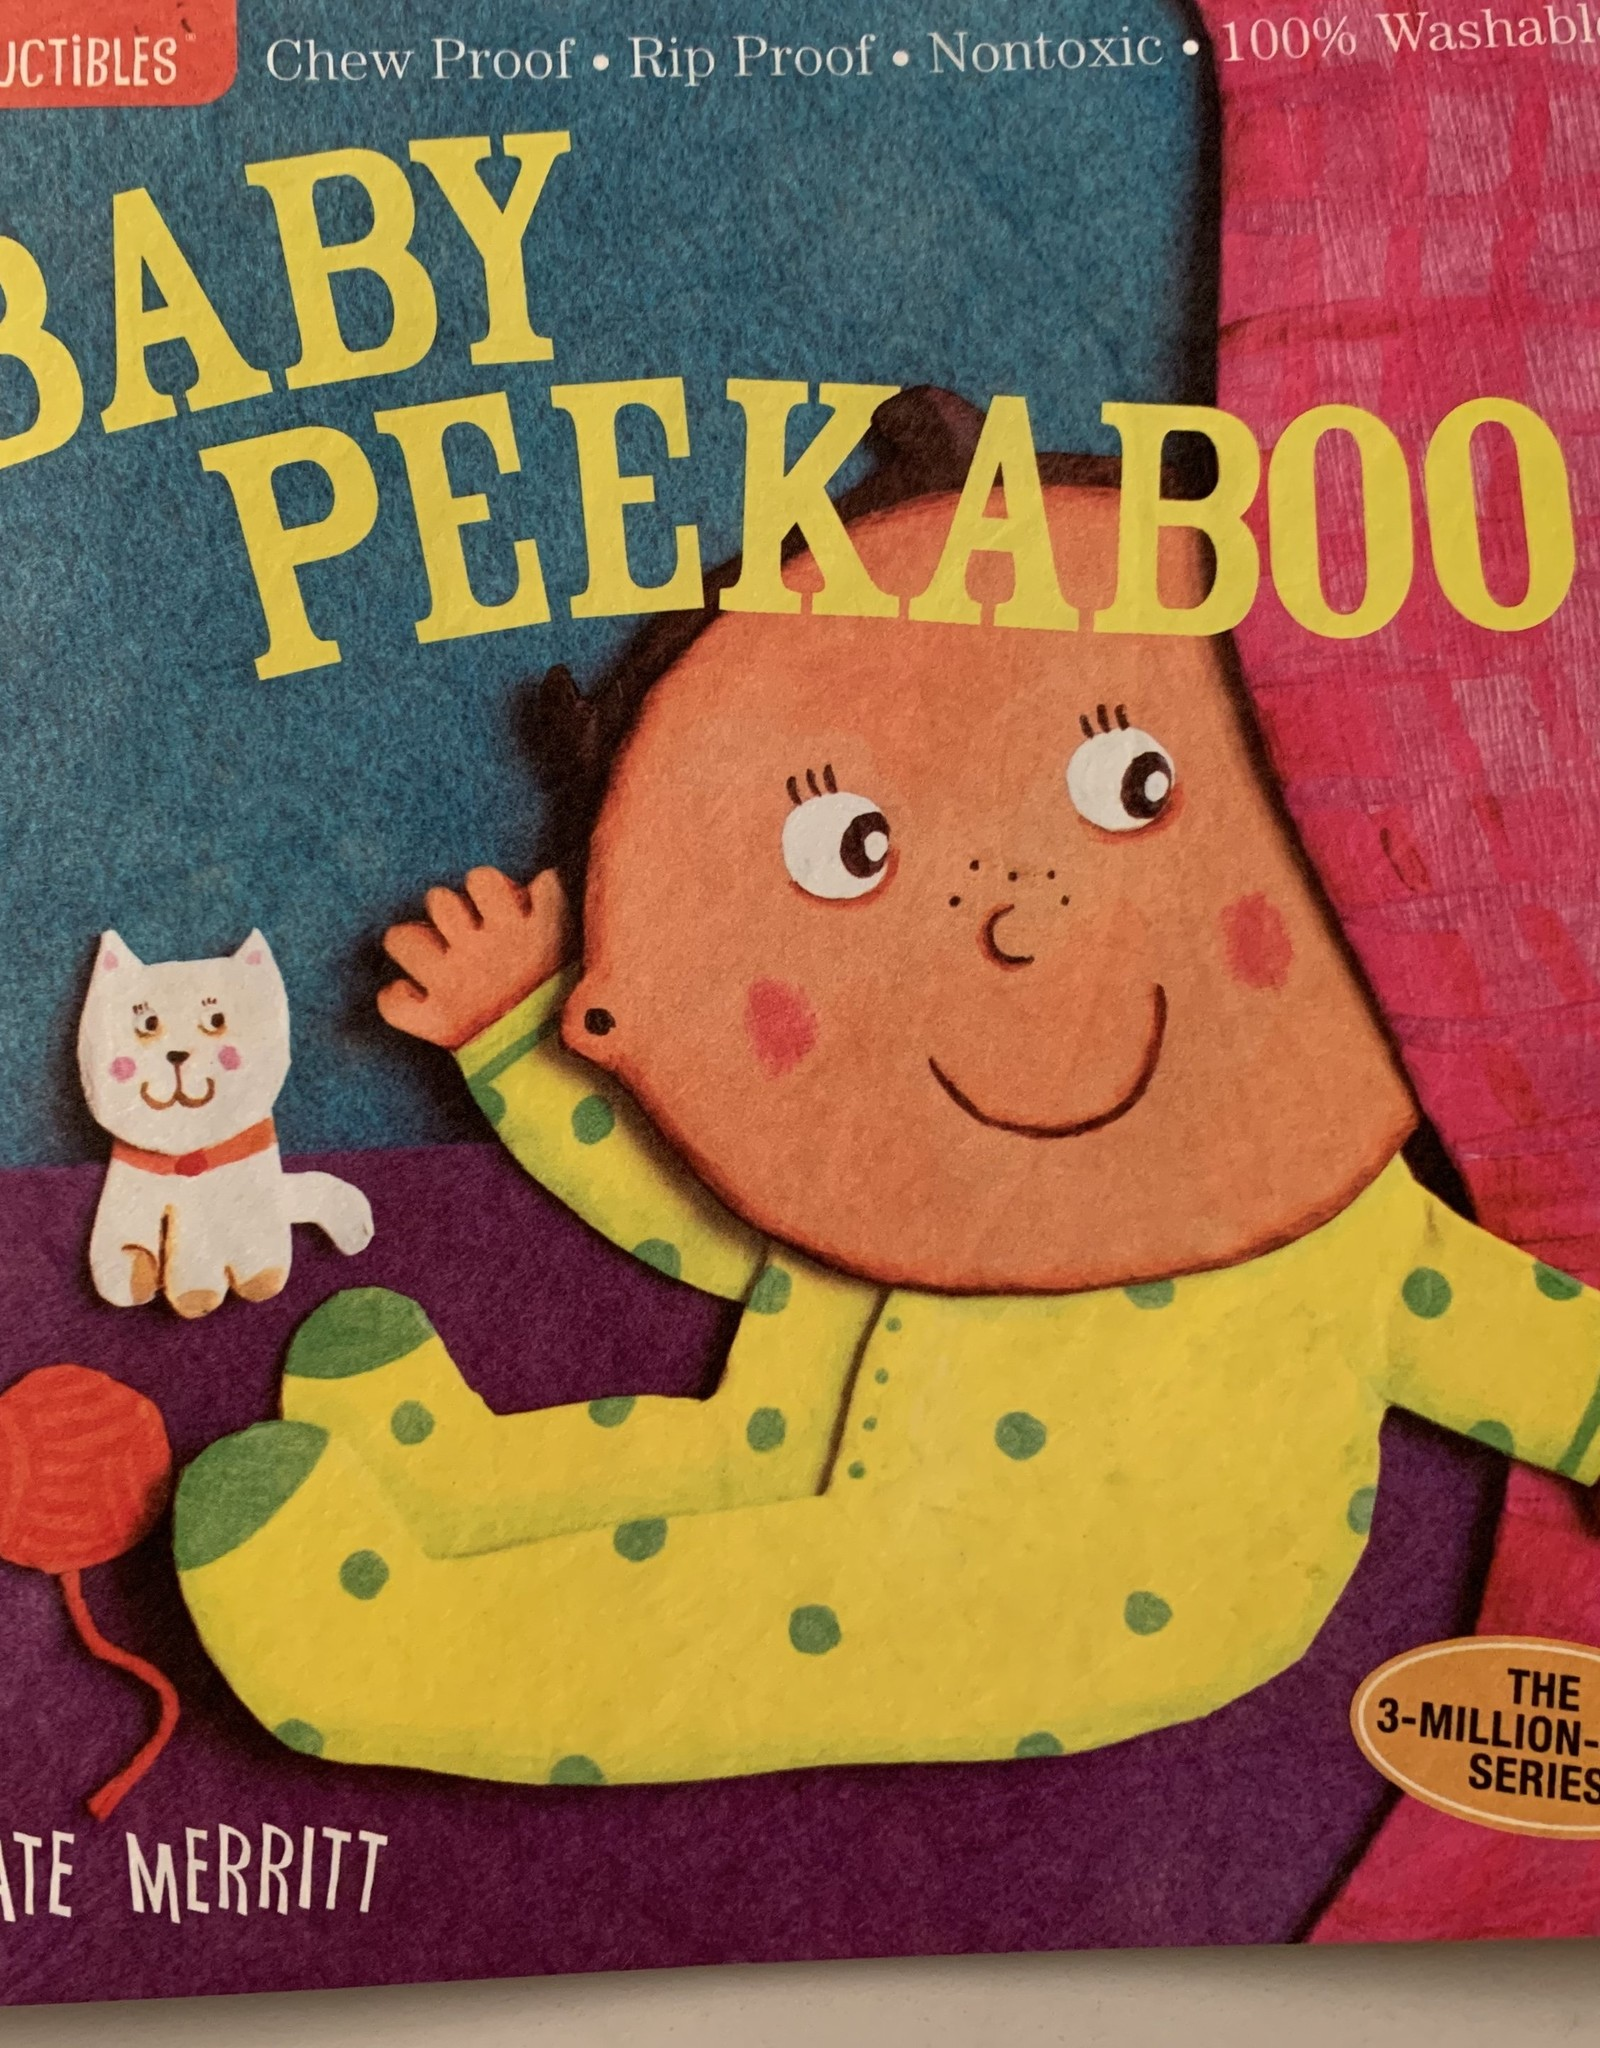 WORKMAN PUBLISHING Indestructibles Book - Baby Peekaboo